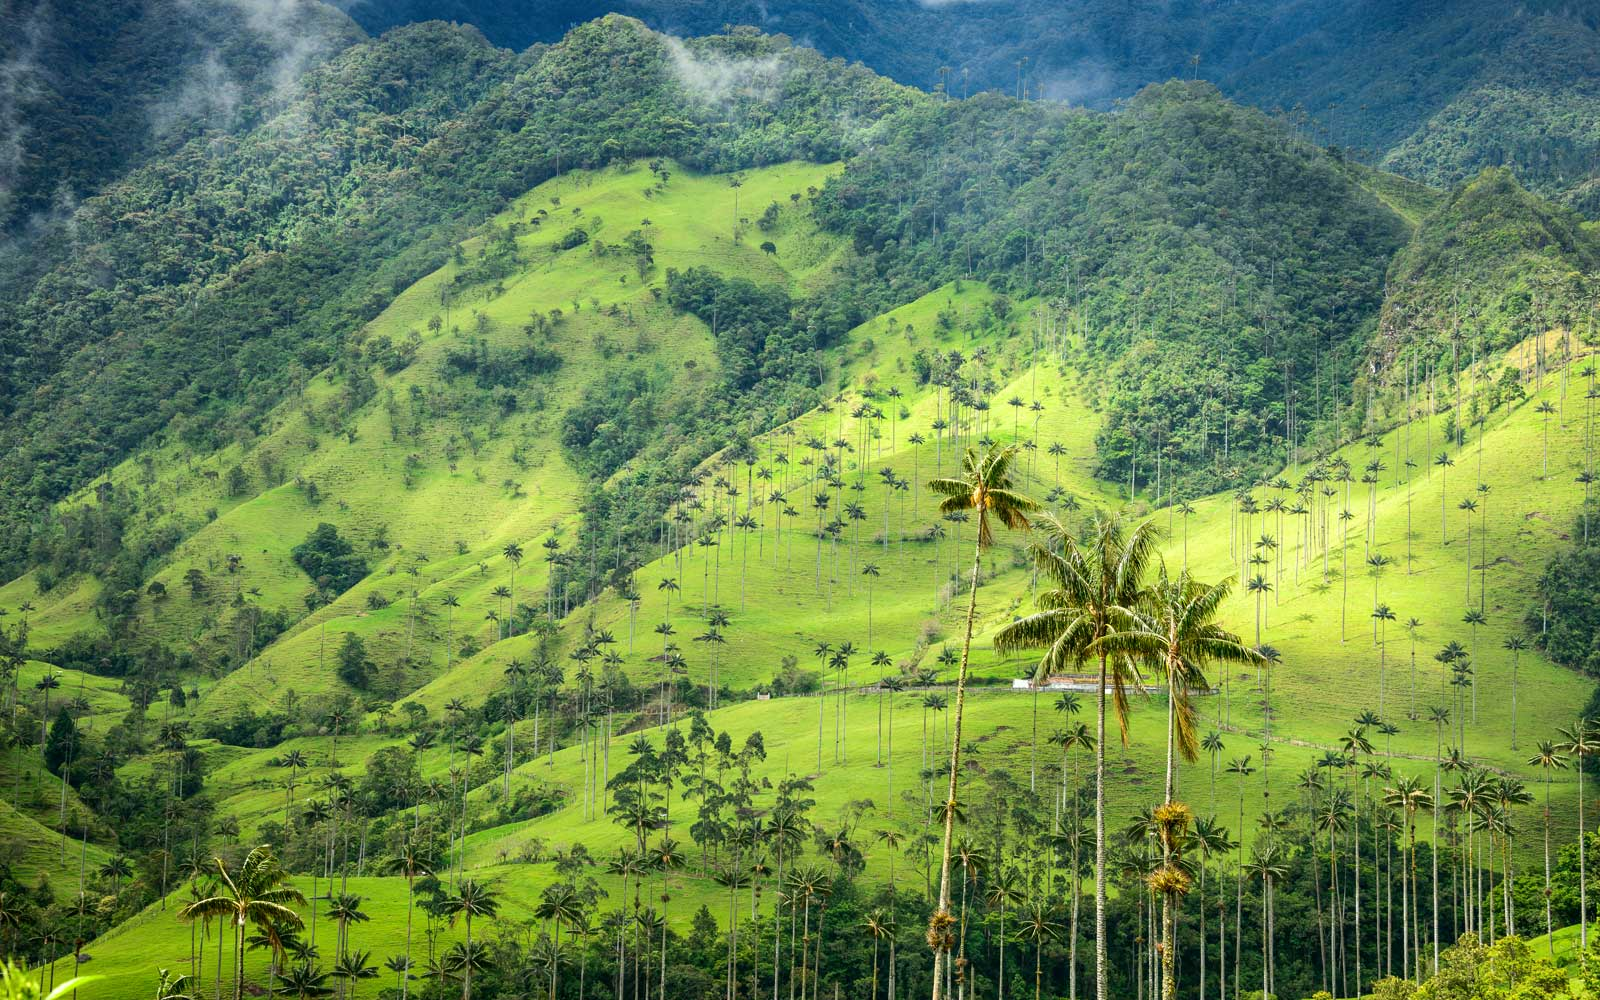 Hills and tall Palm trees in the Cocora Valley near Salento, Colombia